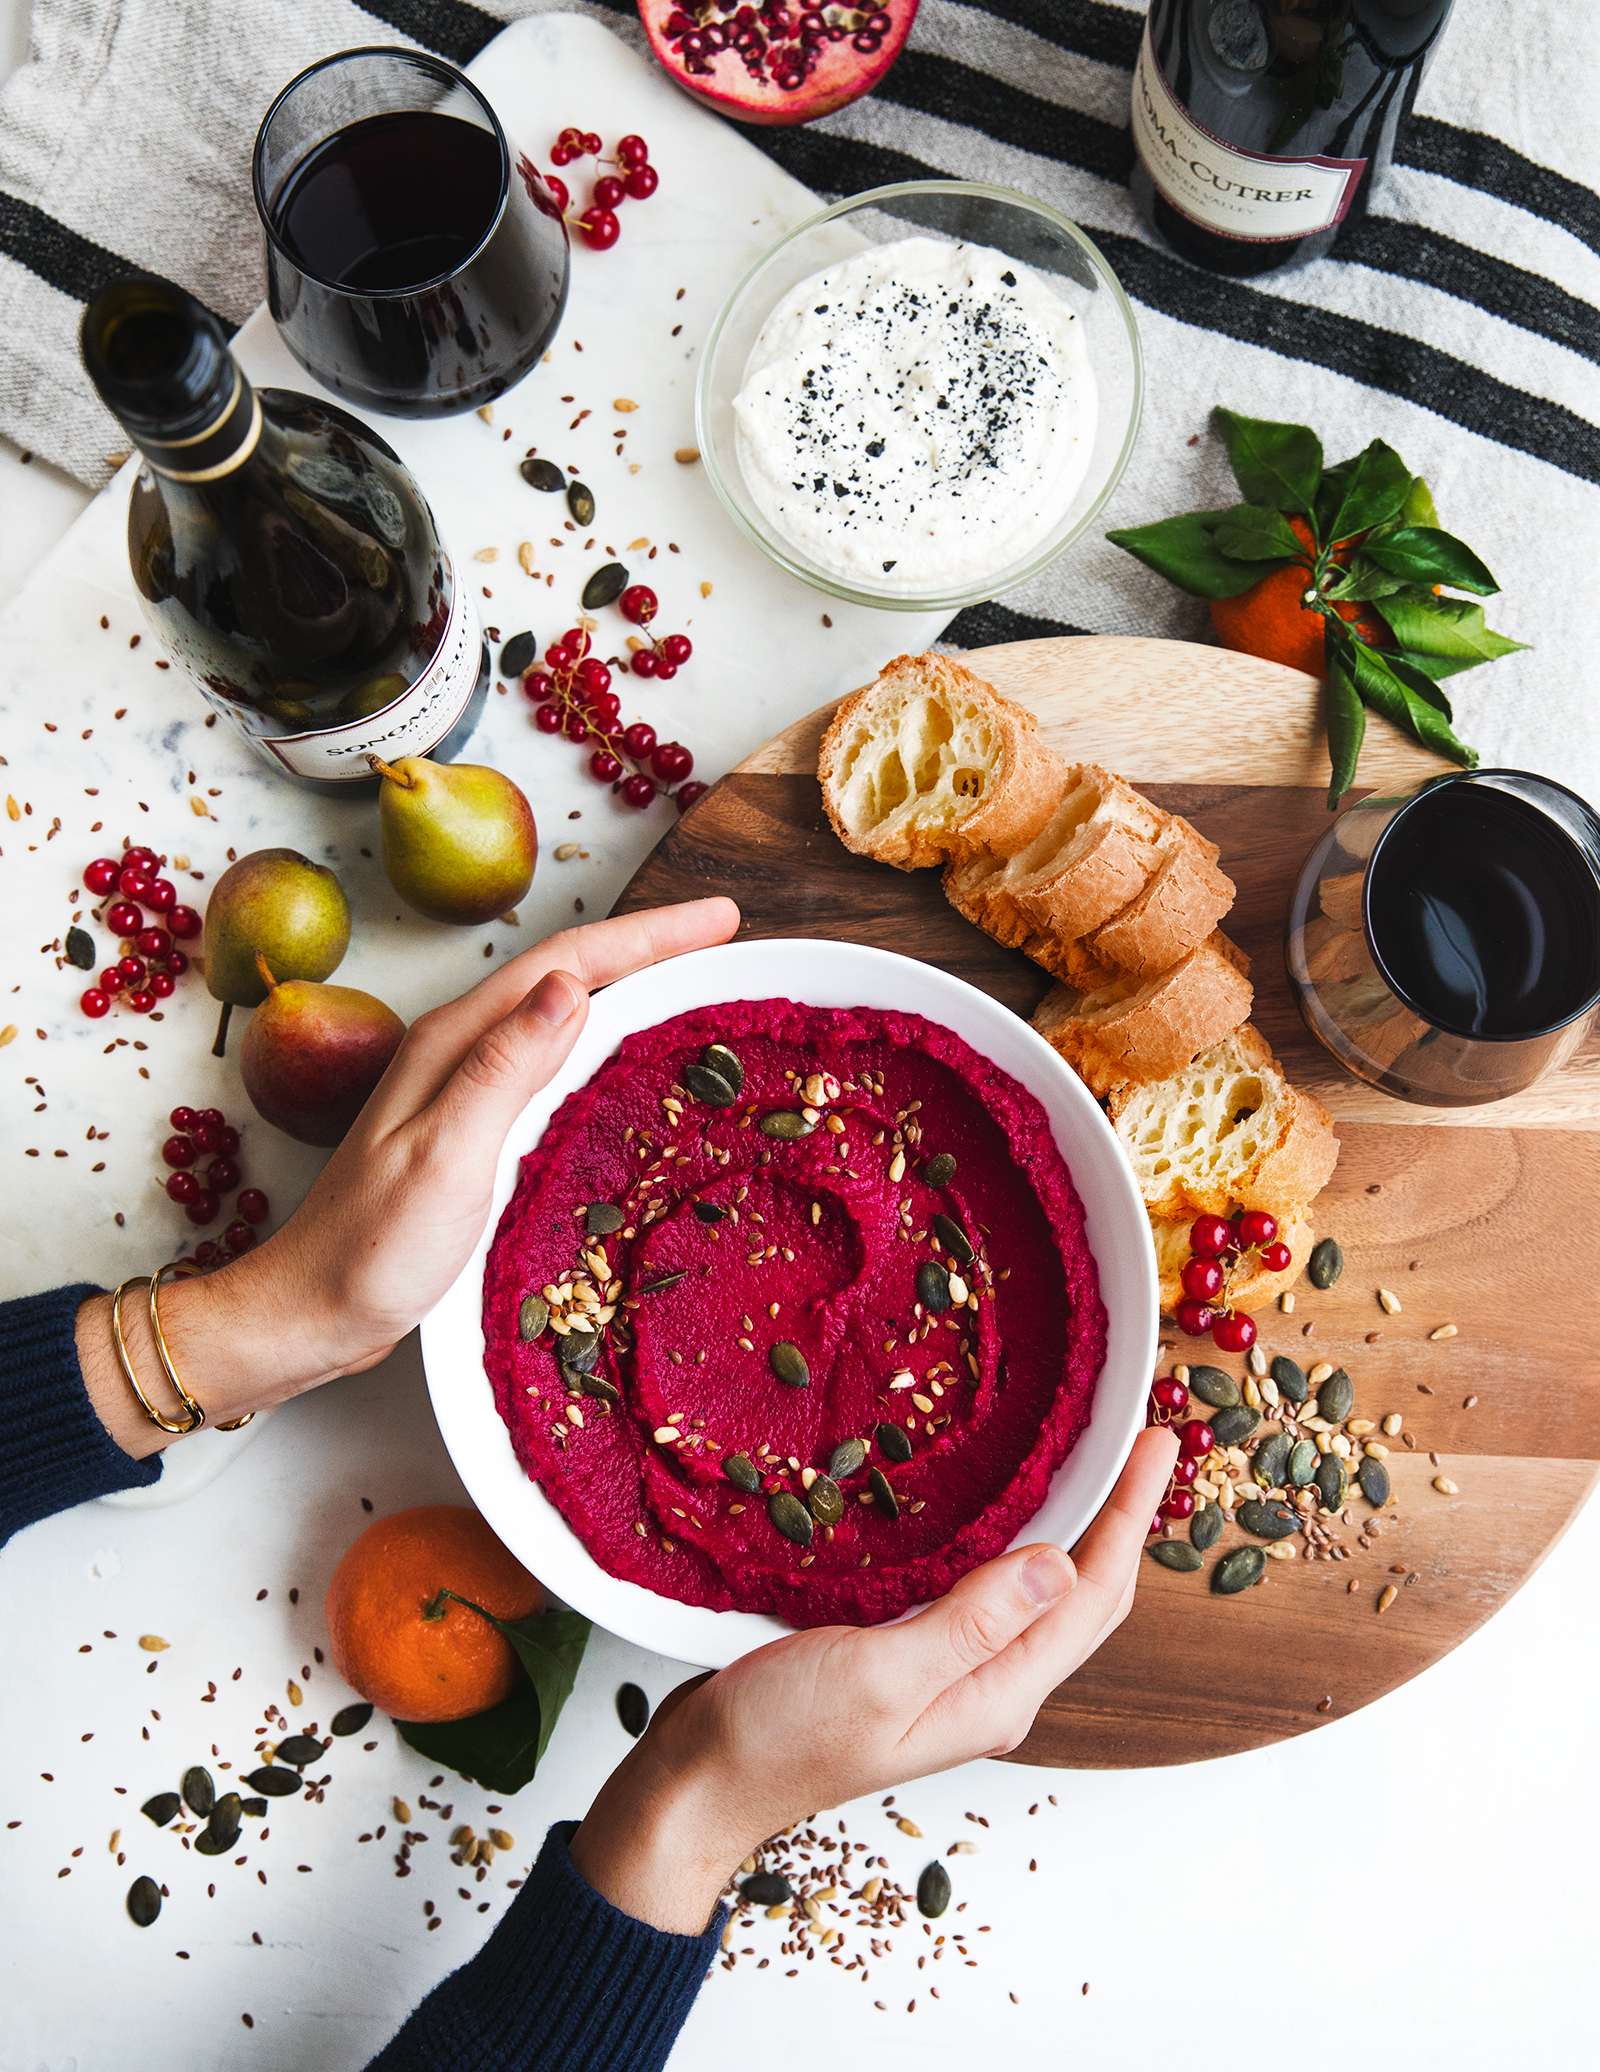 Roasted Beet Hummus with Seeds+ Honey Ricotta Dip with Black Salt - featuring Pinot Noir from Sonoma-Cutrer